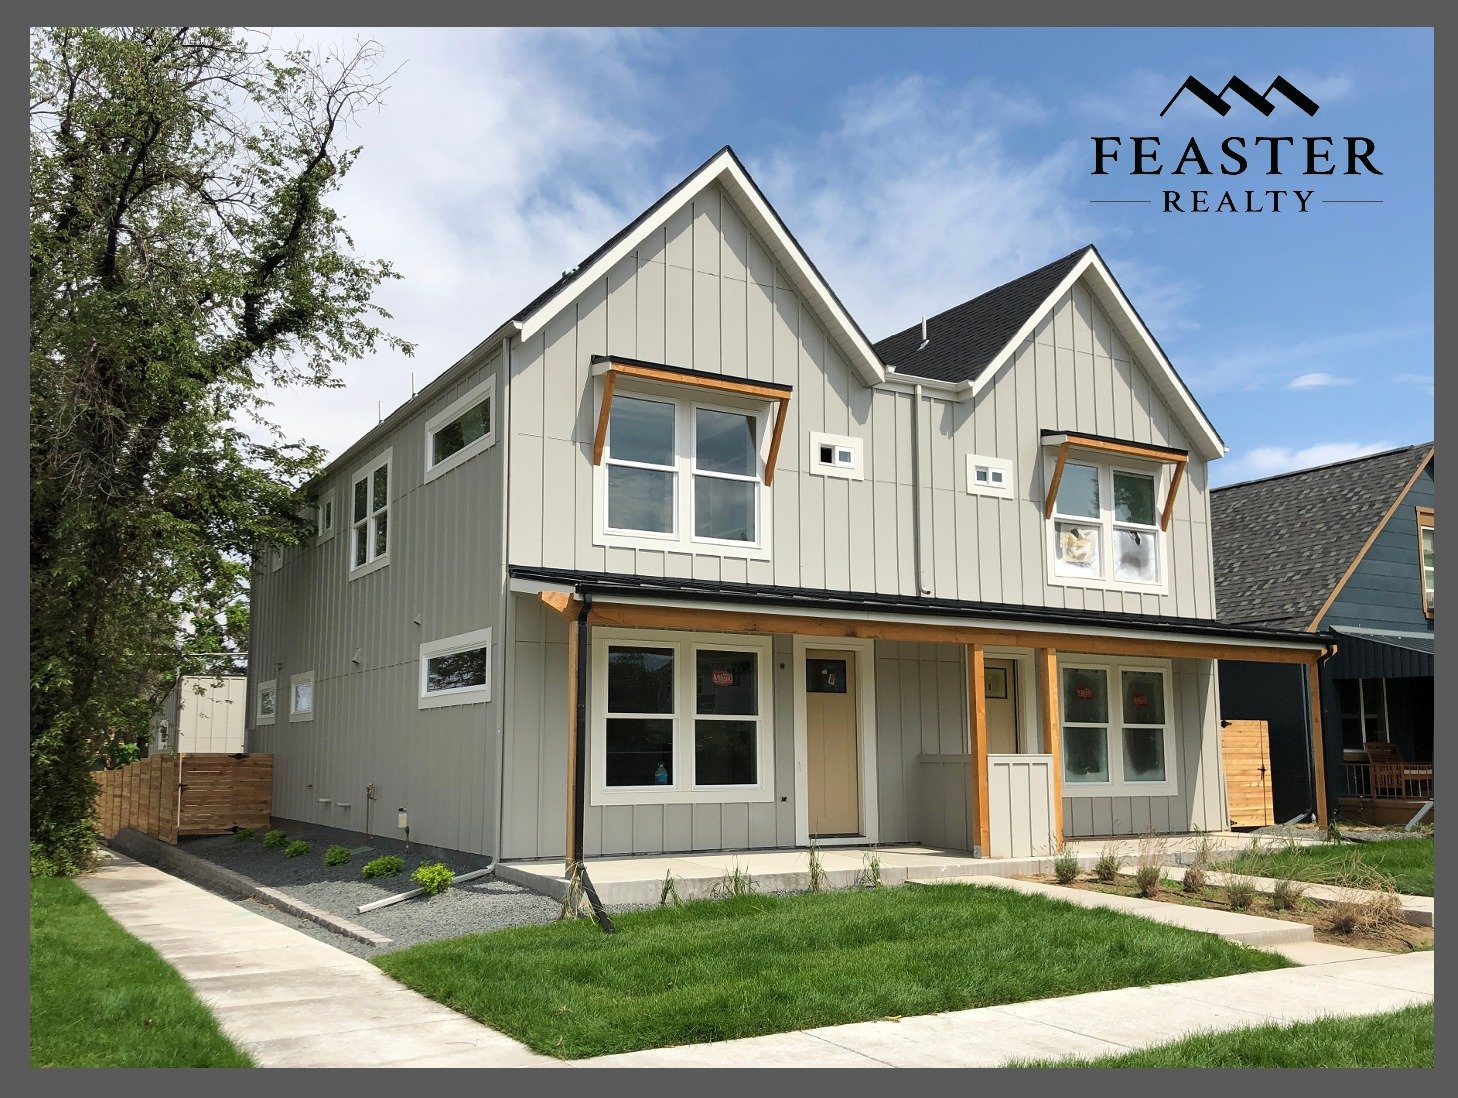 New Modern Farmhouse in Sunnyside Denver CO | Feaster Realty